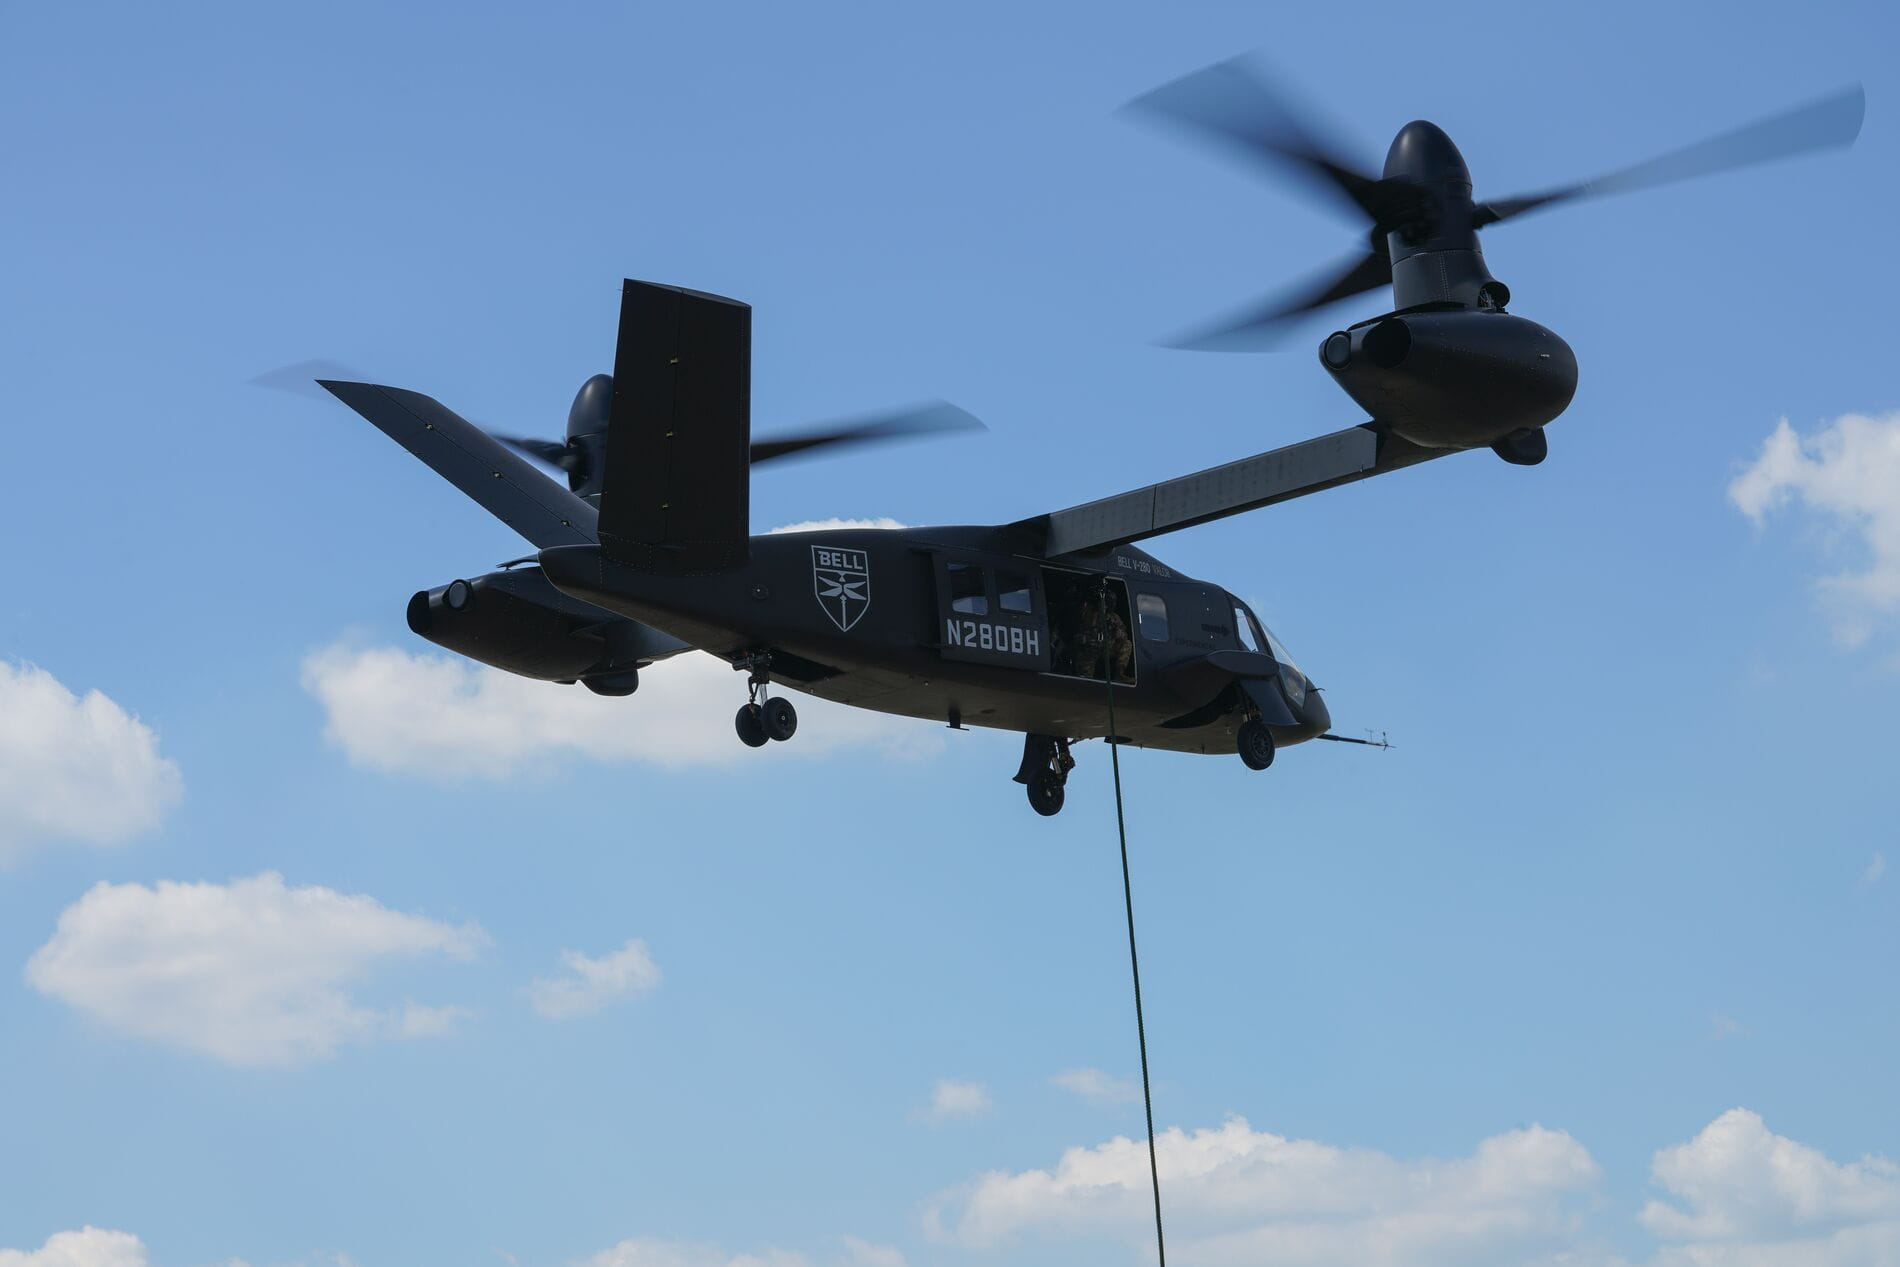 Bell V-280 Valor in flight showing fast rope missions. The Bell V-280 is Bell's entry to the U.S. Army's Future Long Range Assault Aircraft (FLRAA) and Future Vertical Lift (FVL) competition.